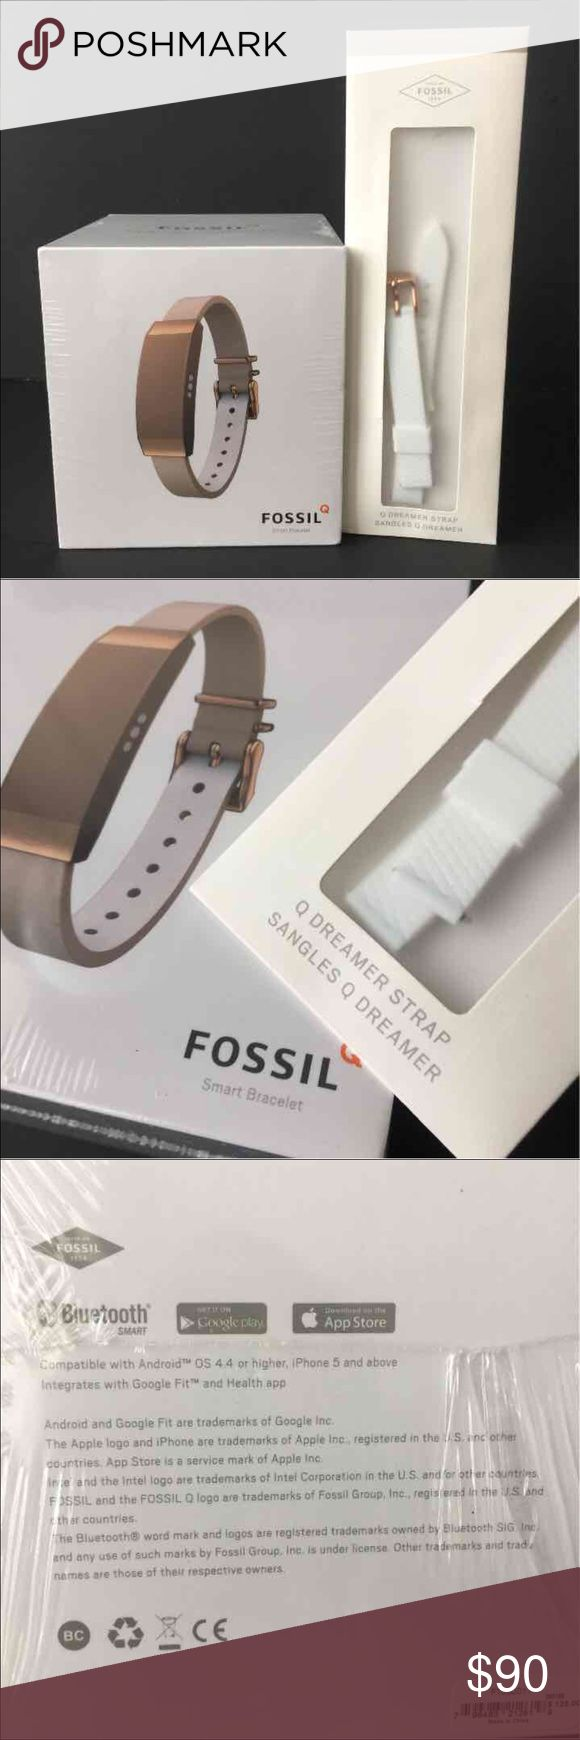 FOSSIL Q Dreamer Smart Bracelet Rosegold ExtraStrp Brand New (Sealed)! - Rose Gold FOSSIL Q Dreamer Smart Bracelet plus Extra Strap!  Smart Bracelet Activity Tracker FTJ50011 Retail:125++ (Bracelet)             25++ (Extra Strap)  Stainless Steel Case  Brown Leather Strap  Extra Strap included Never opened (sealed) Fossil Accessories Watches